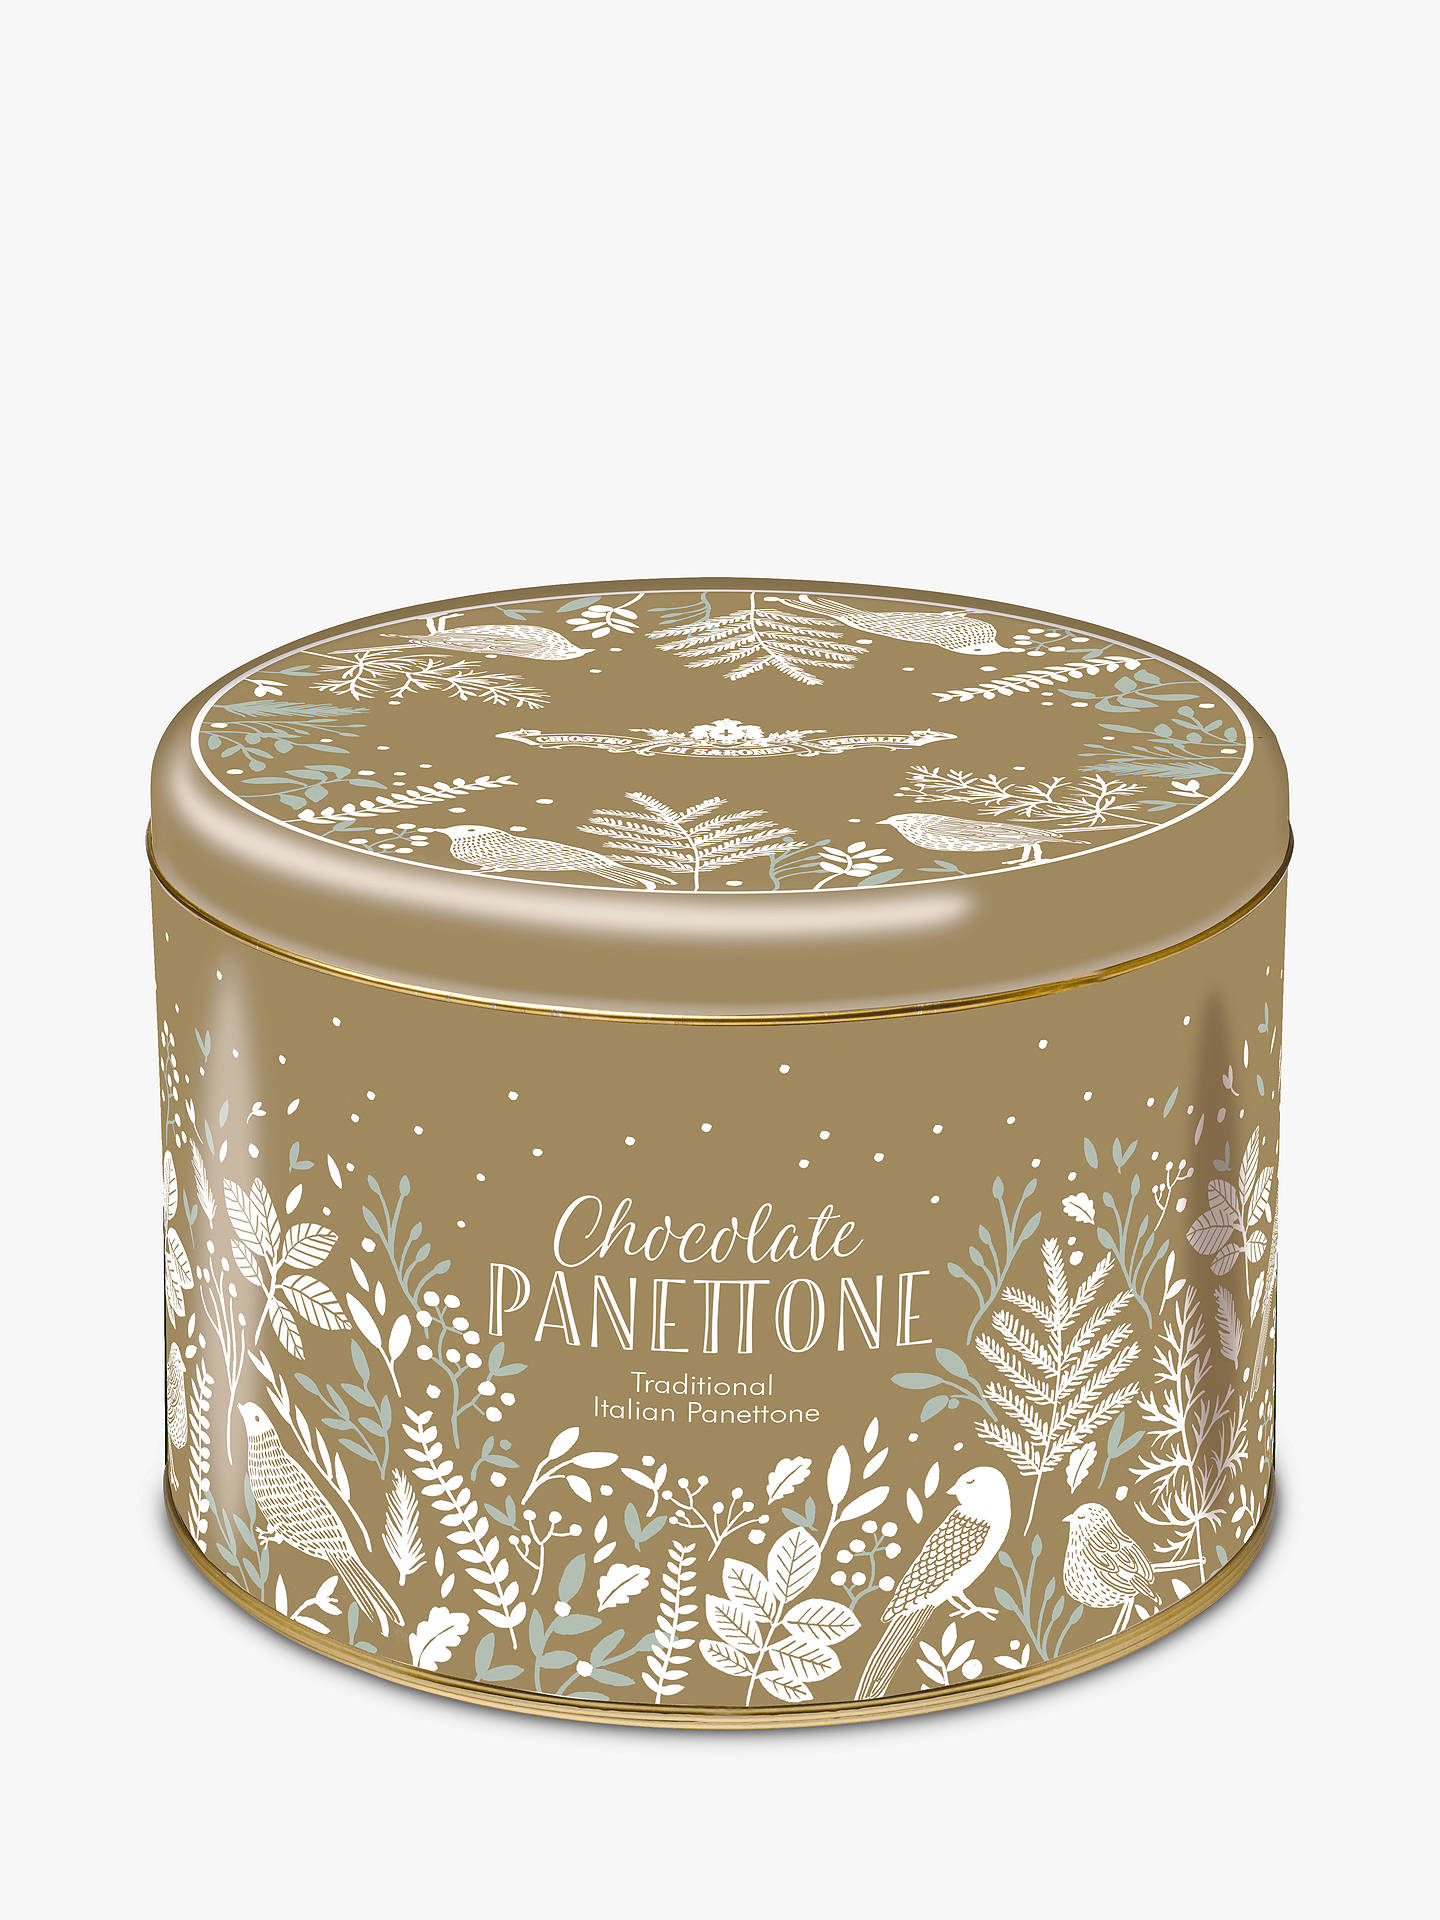 Lazzaroni Chocolate Panettone 750g